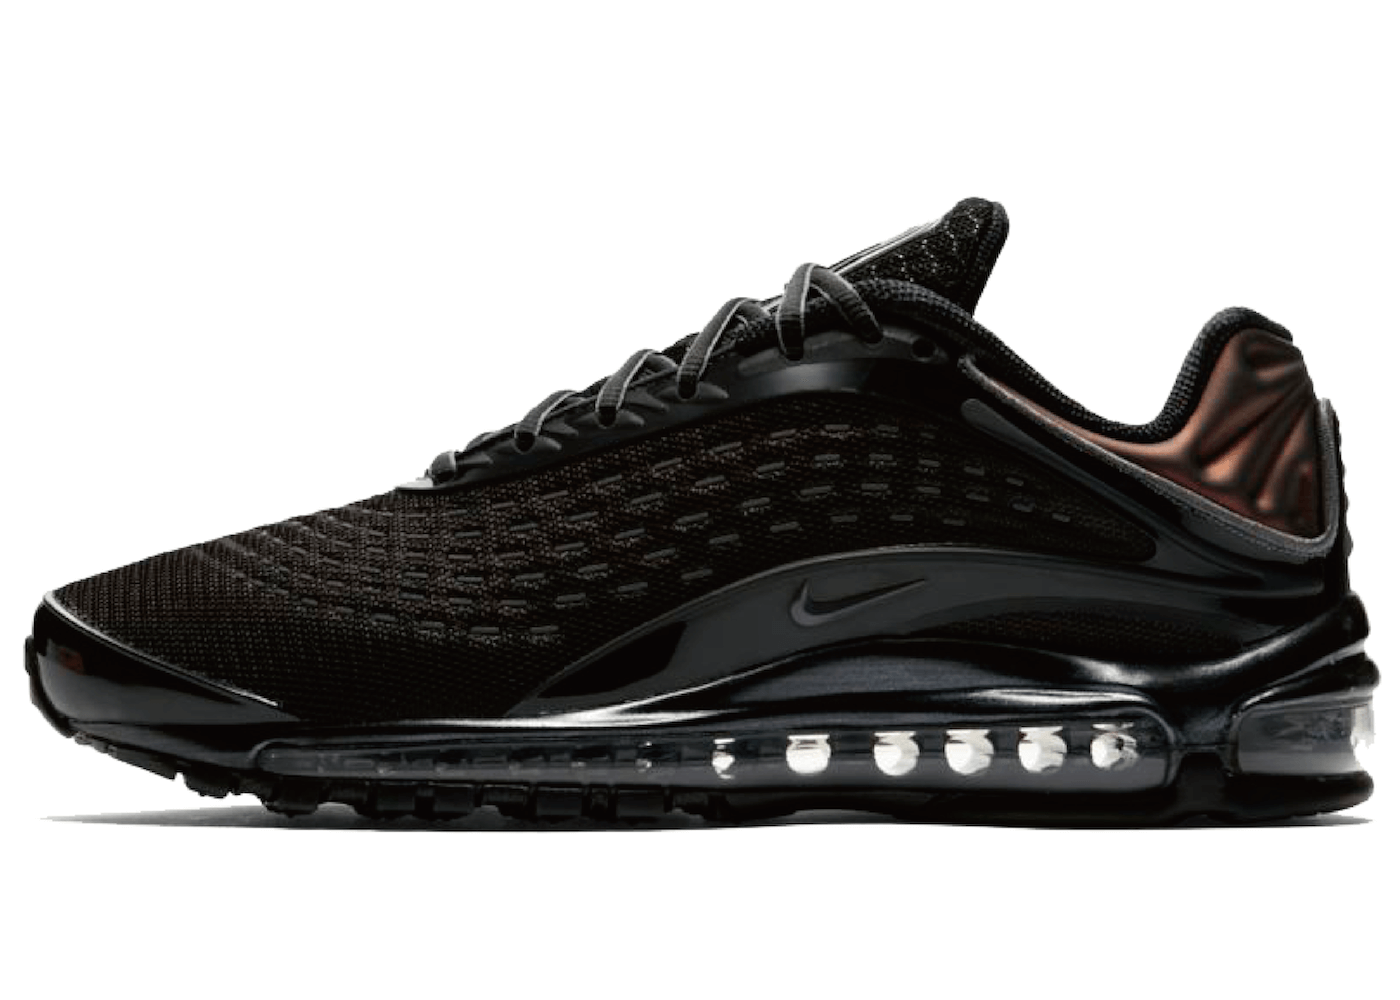 nike air max deluxe black dark grey スニーカーならモノカブ